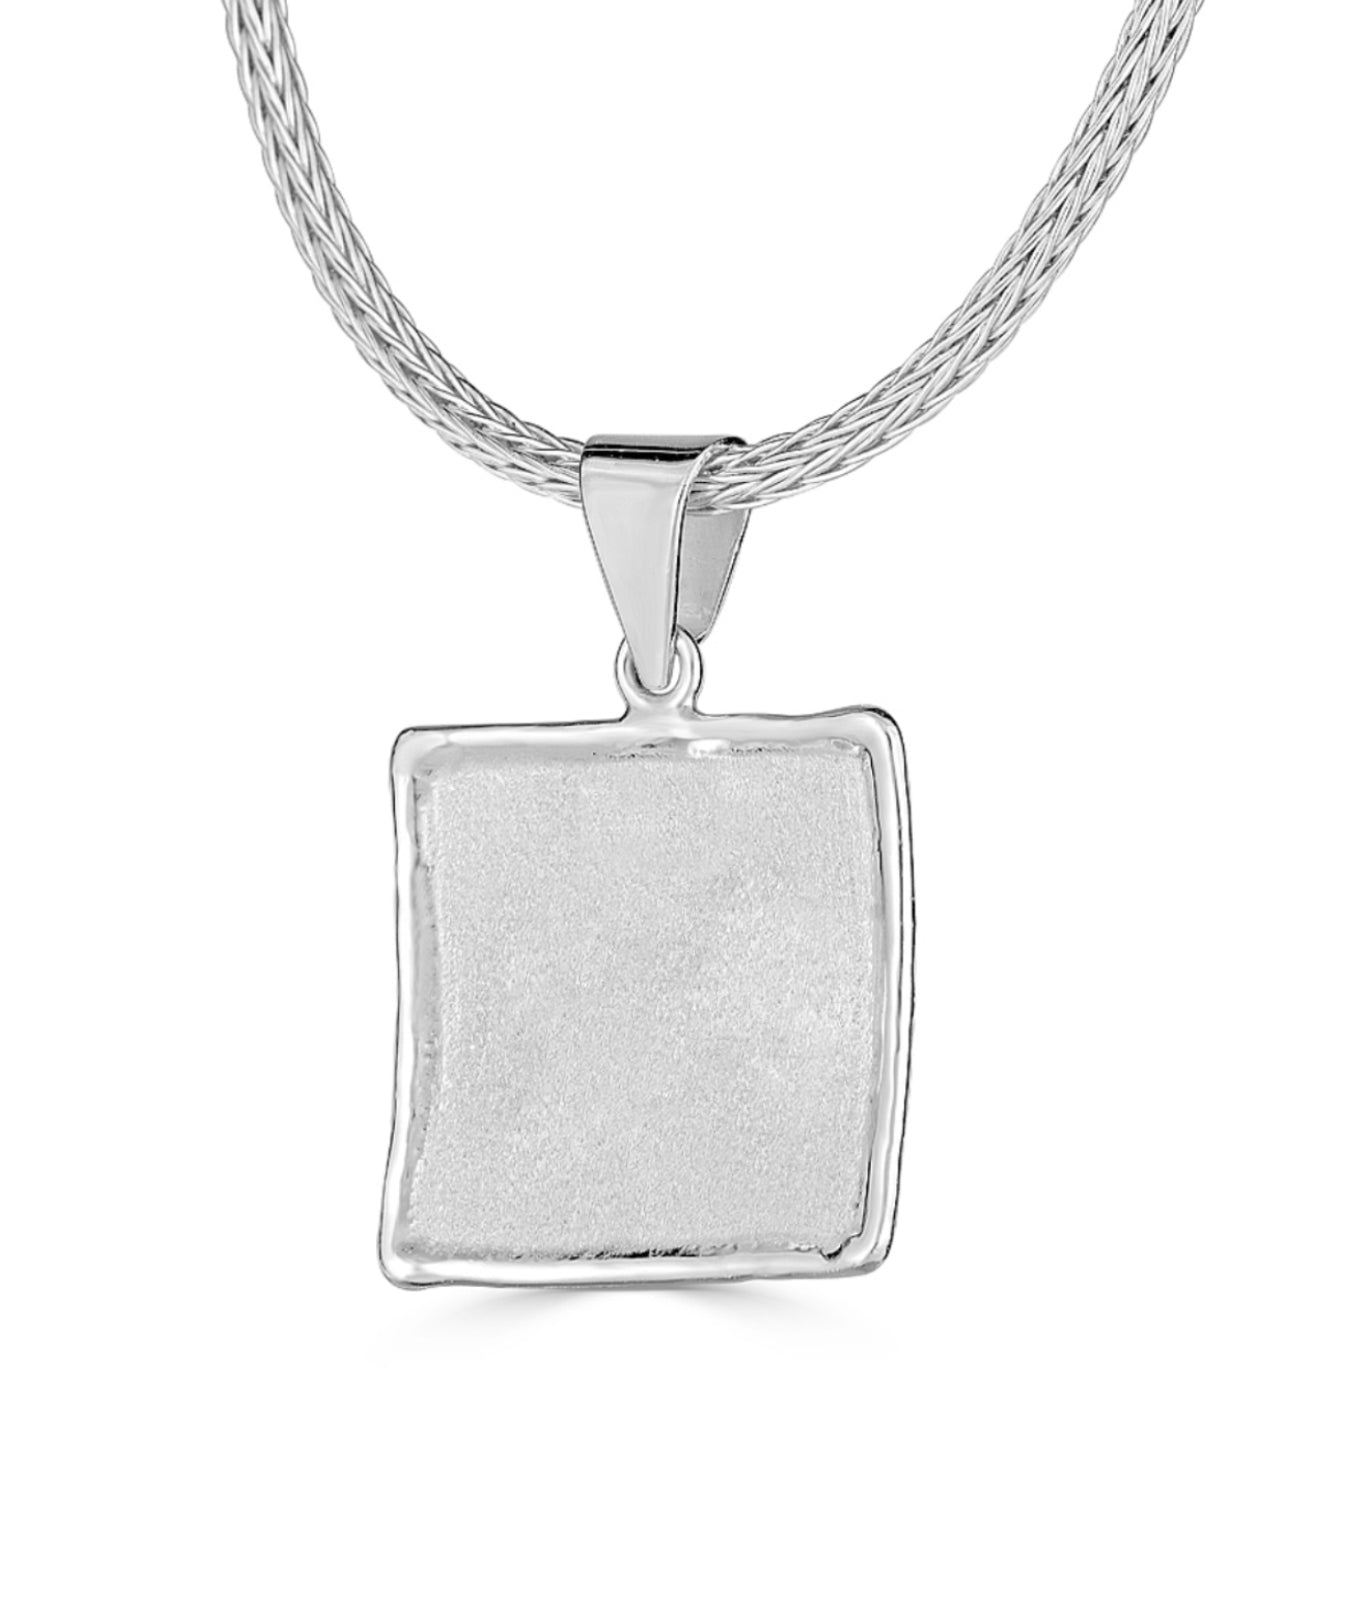 Silver Pendant AMMOS Style 22